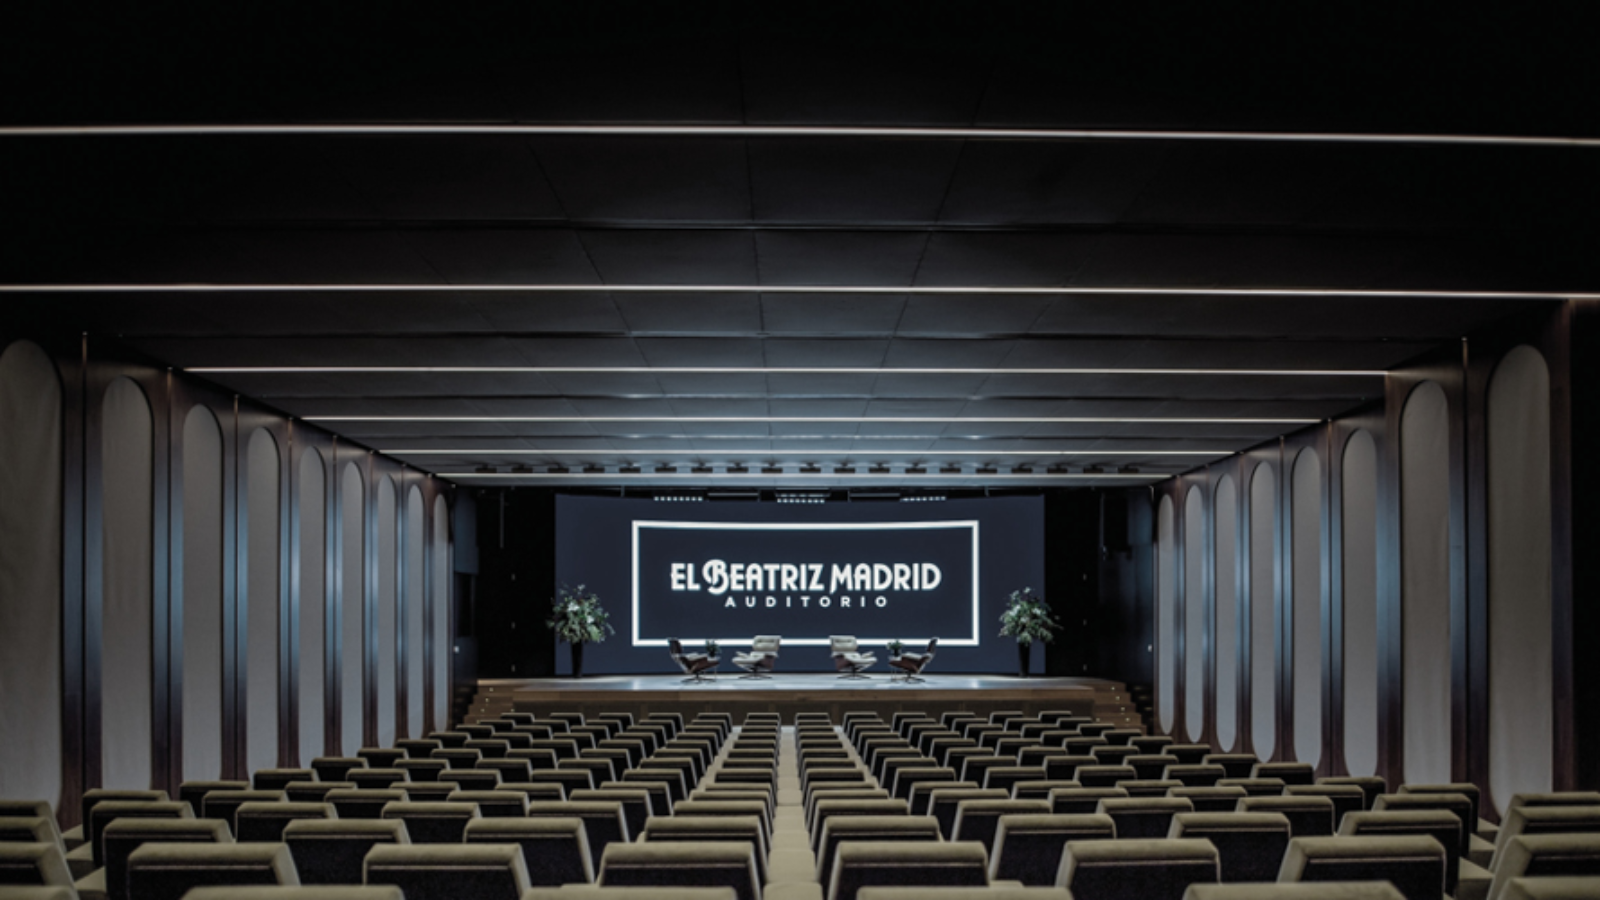 Shure QLX-D and Microflex Complete Digital Conferencing System Upgrades the El Beatriz Madrid Auditorium